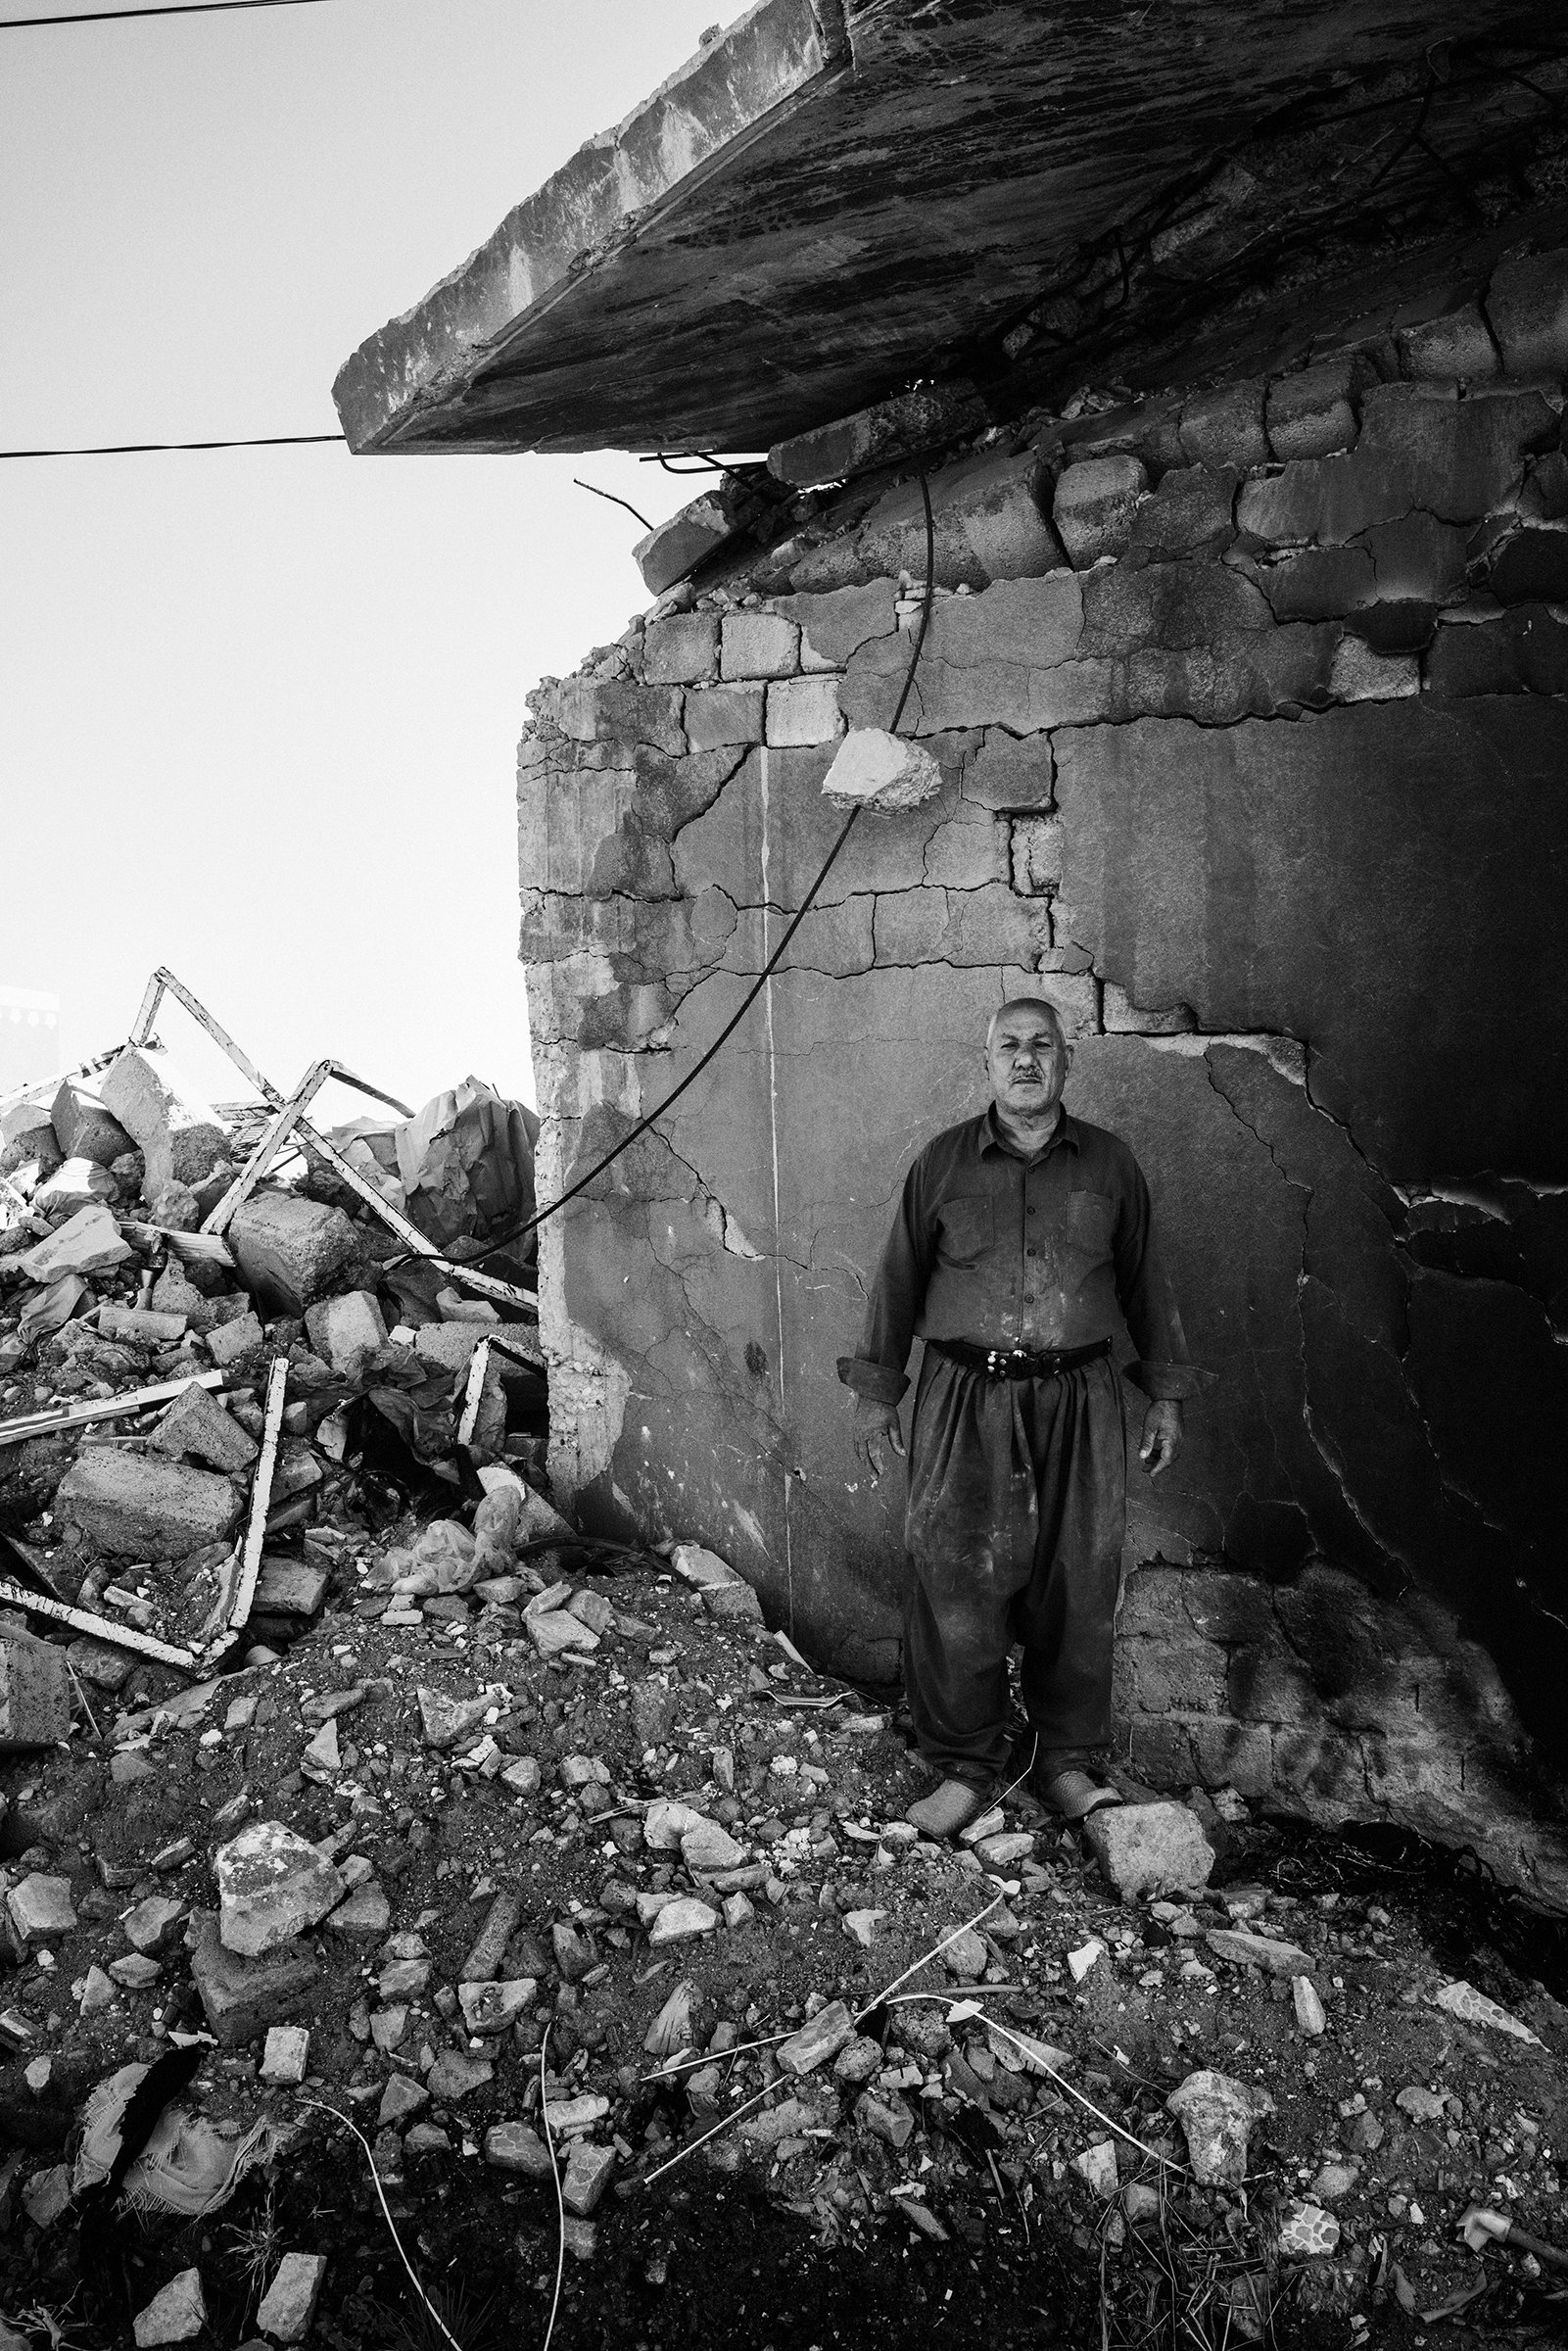 Mohsin Hairan Aswad, 60, a wealthy Yazidi Kurd from Bashiqa, stands in the remains of one of the seven homes that he owns. His homes were destroyed during the fighting to liberate the town from ISIS control in 2016. The next year, his son Faris, a local policeman in Mosul, was killed by an ISIS sniper.